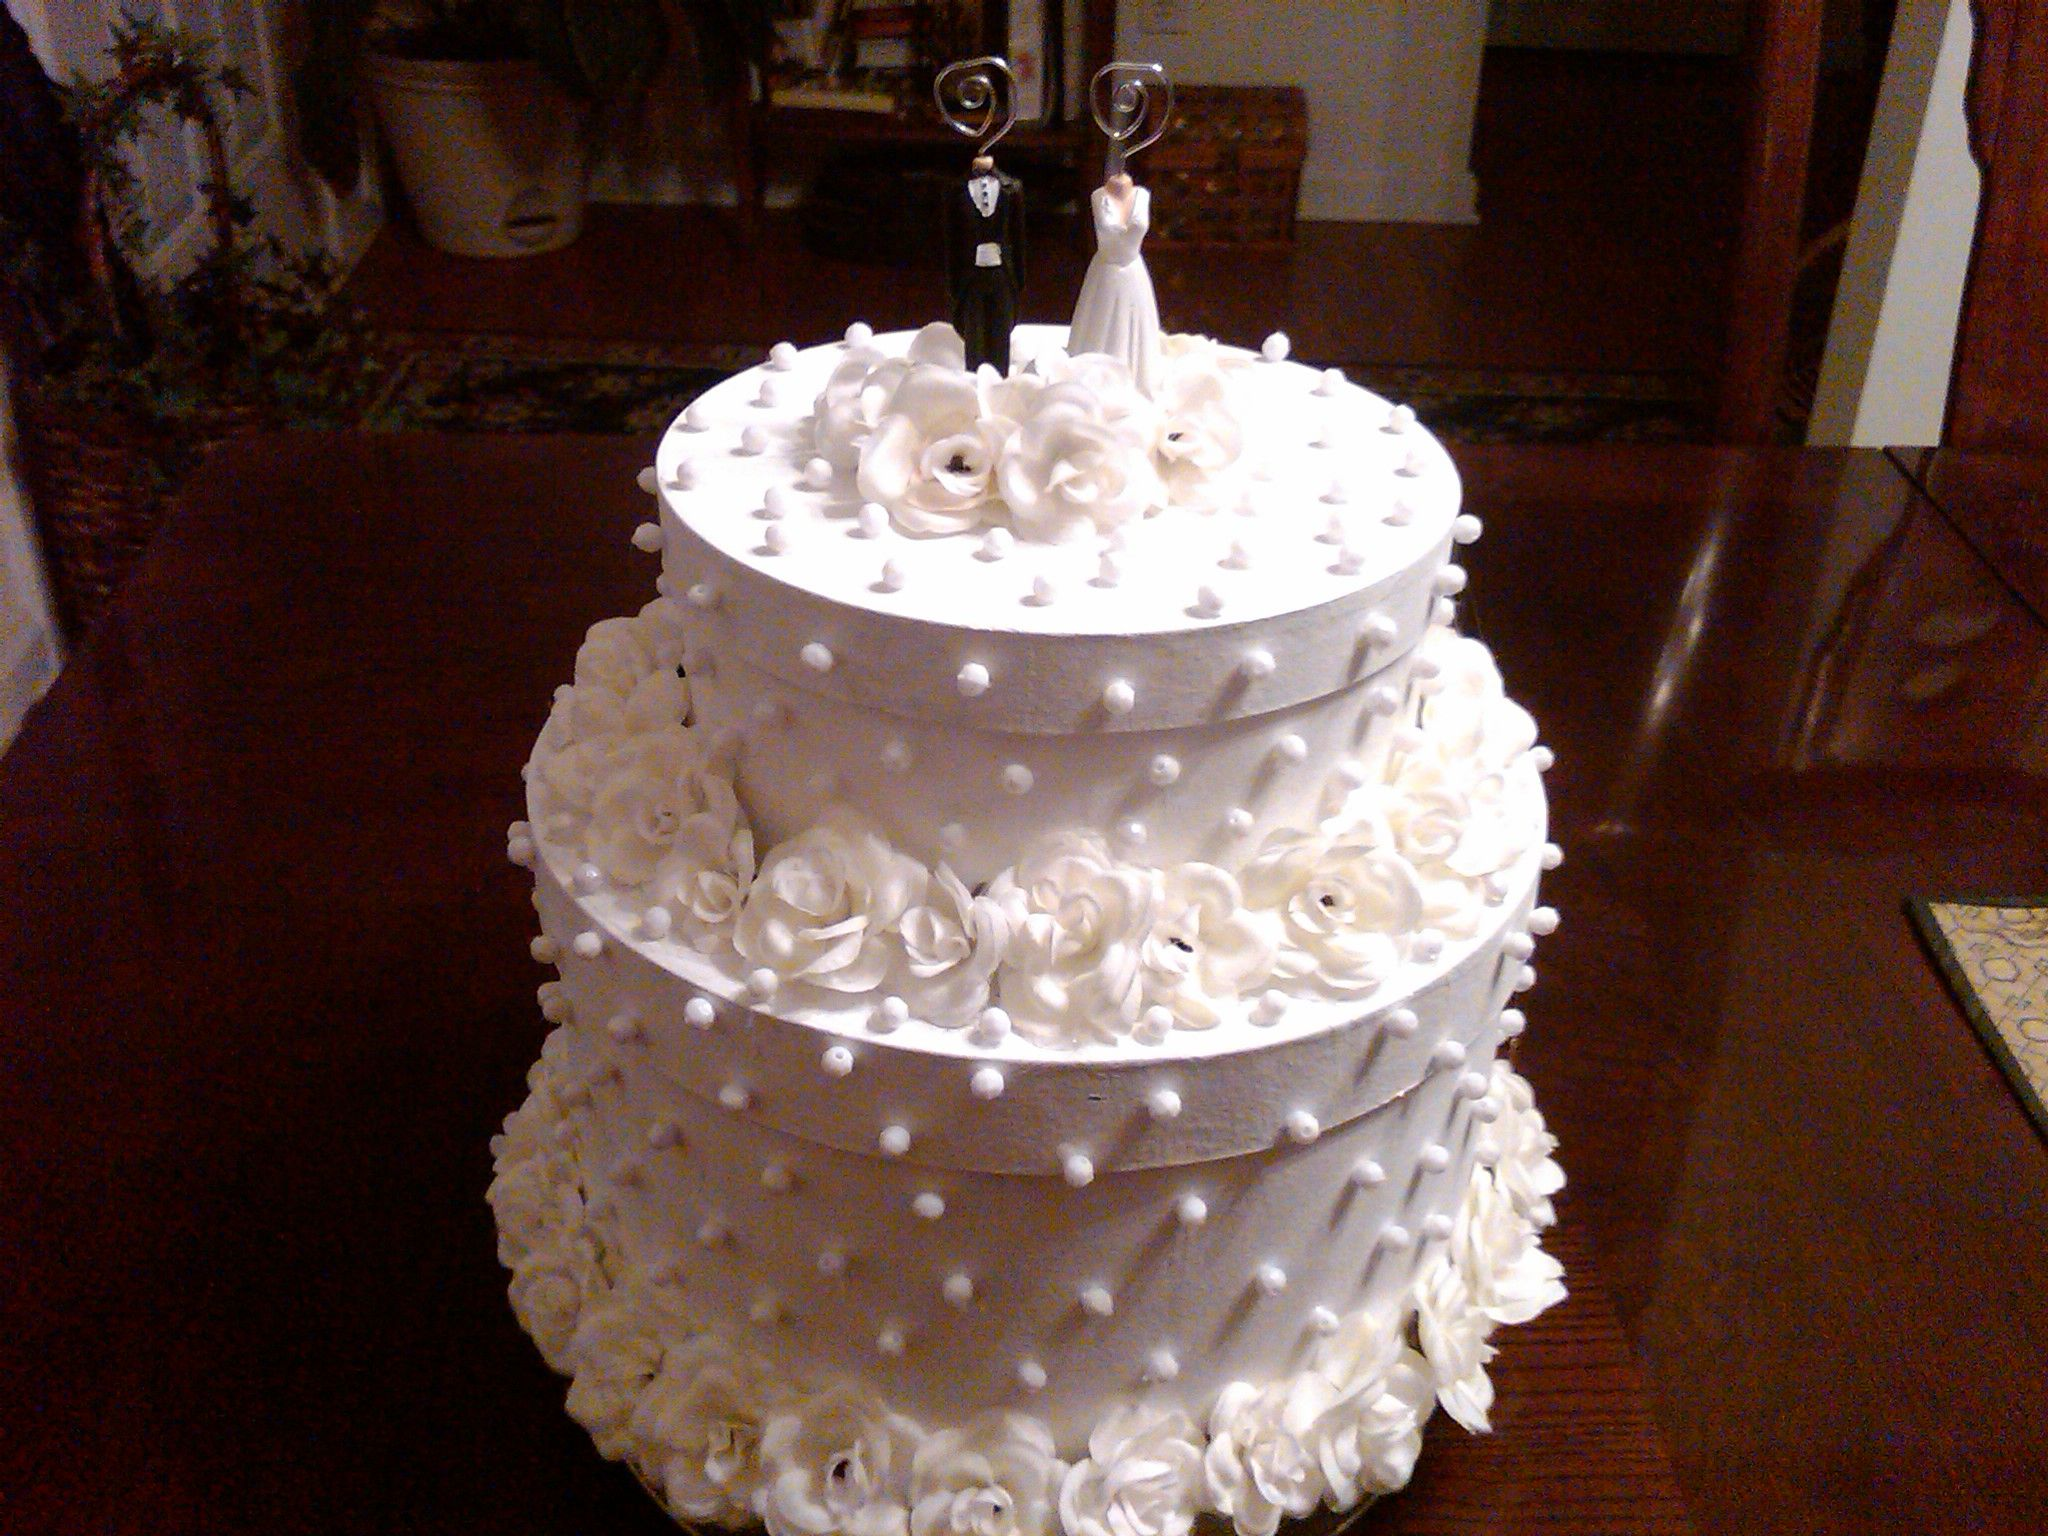 Wedding Cake money box made of paper mache boxes painted and